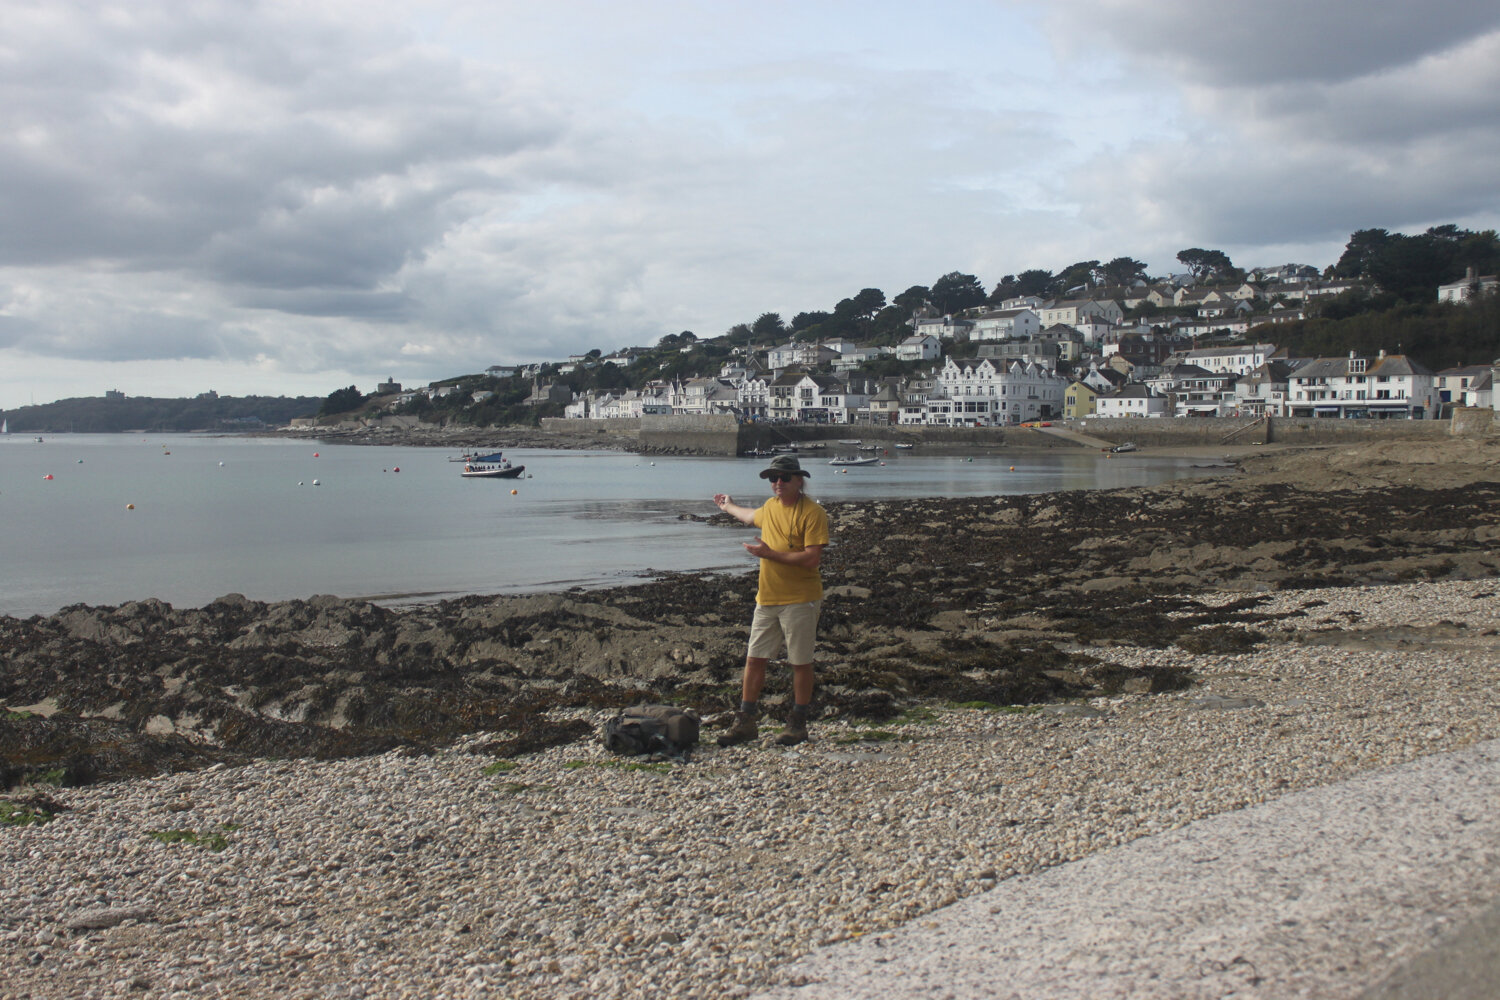 st mawes today